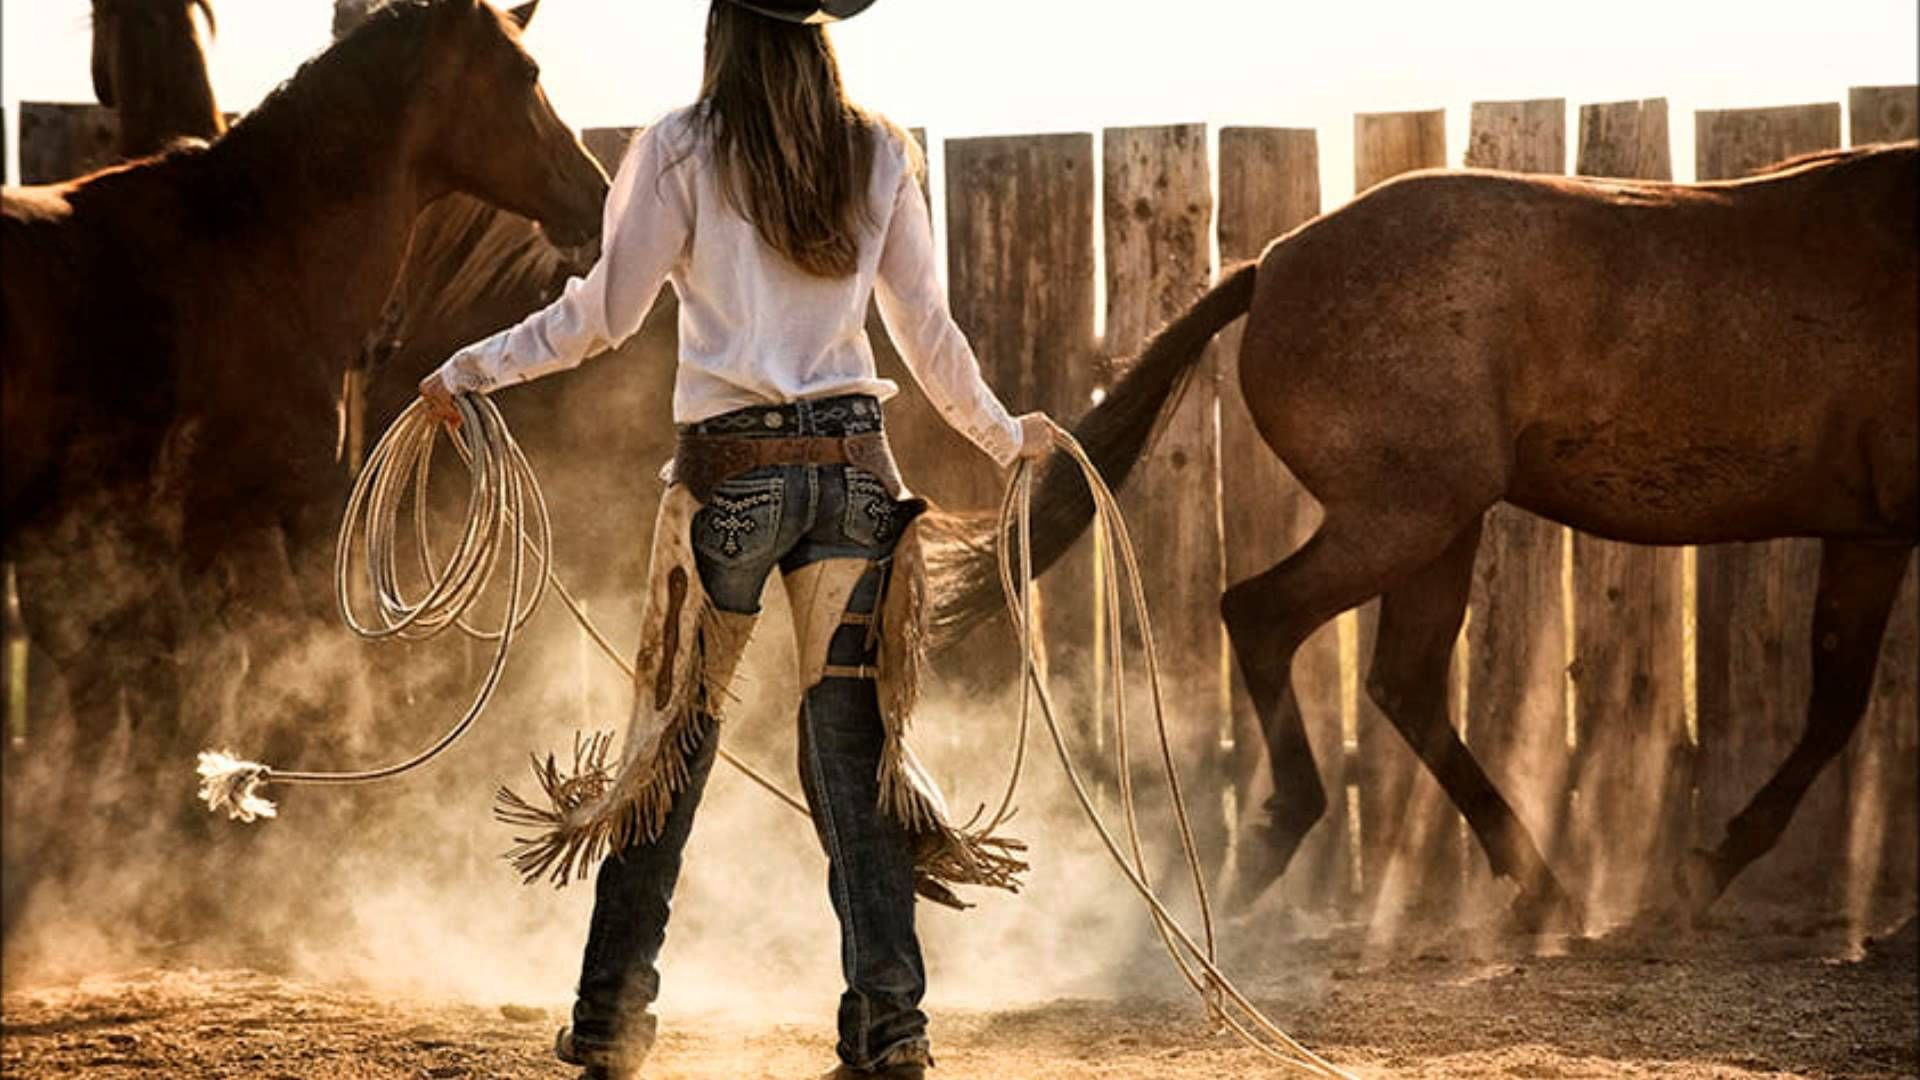 Free Cowgirl Hd Wallpapers Horse Love Horses Cowgirl And Horse